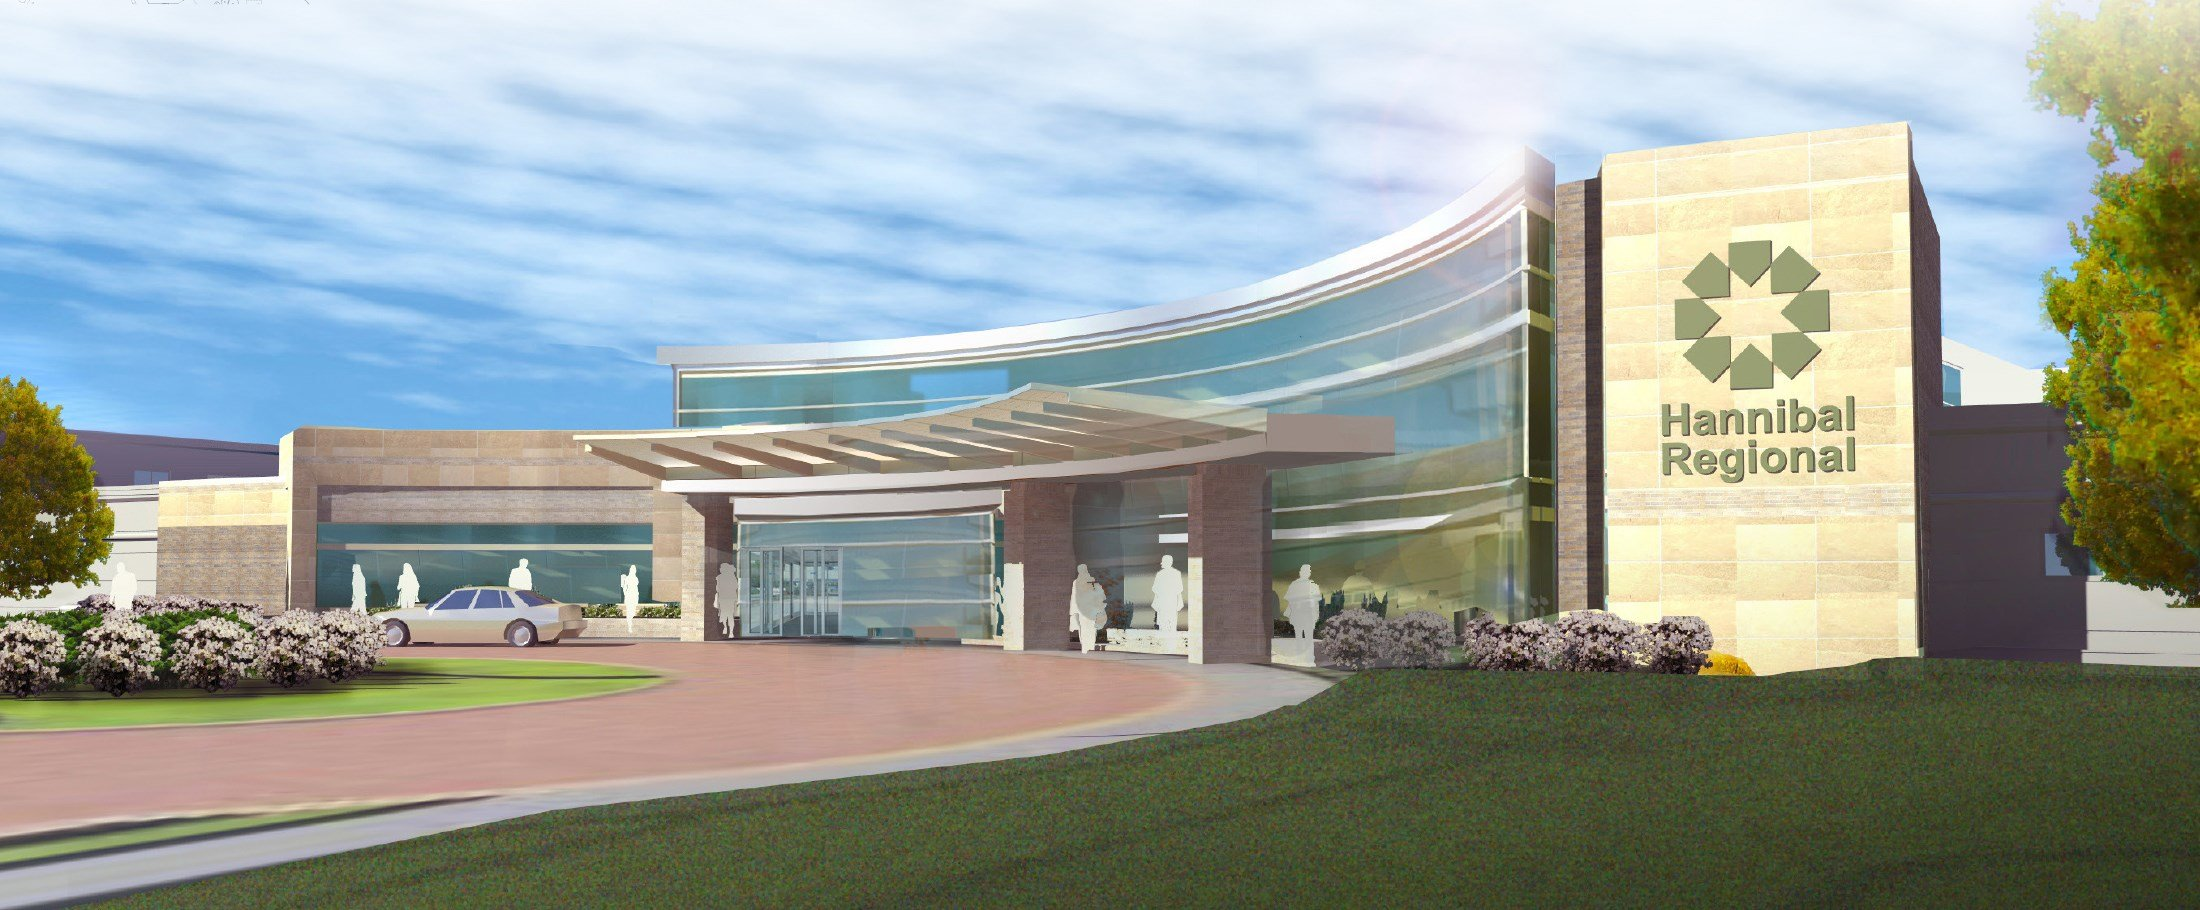 Rendering of the new entrance.